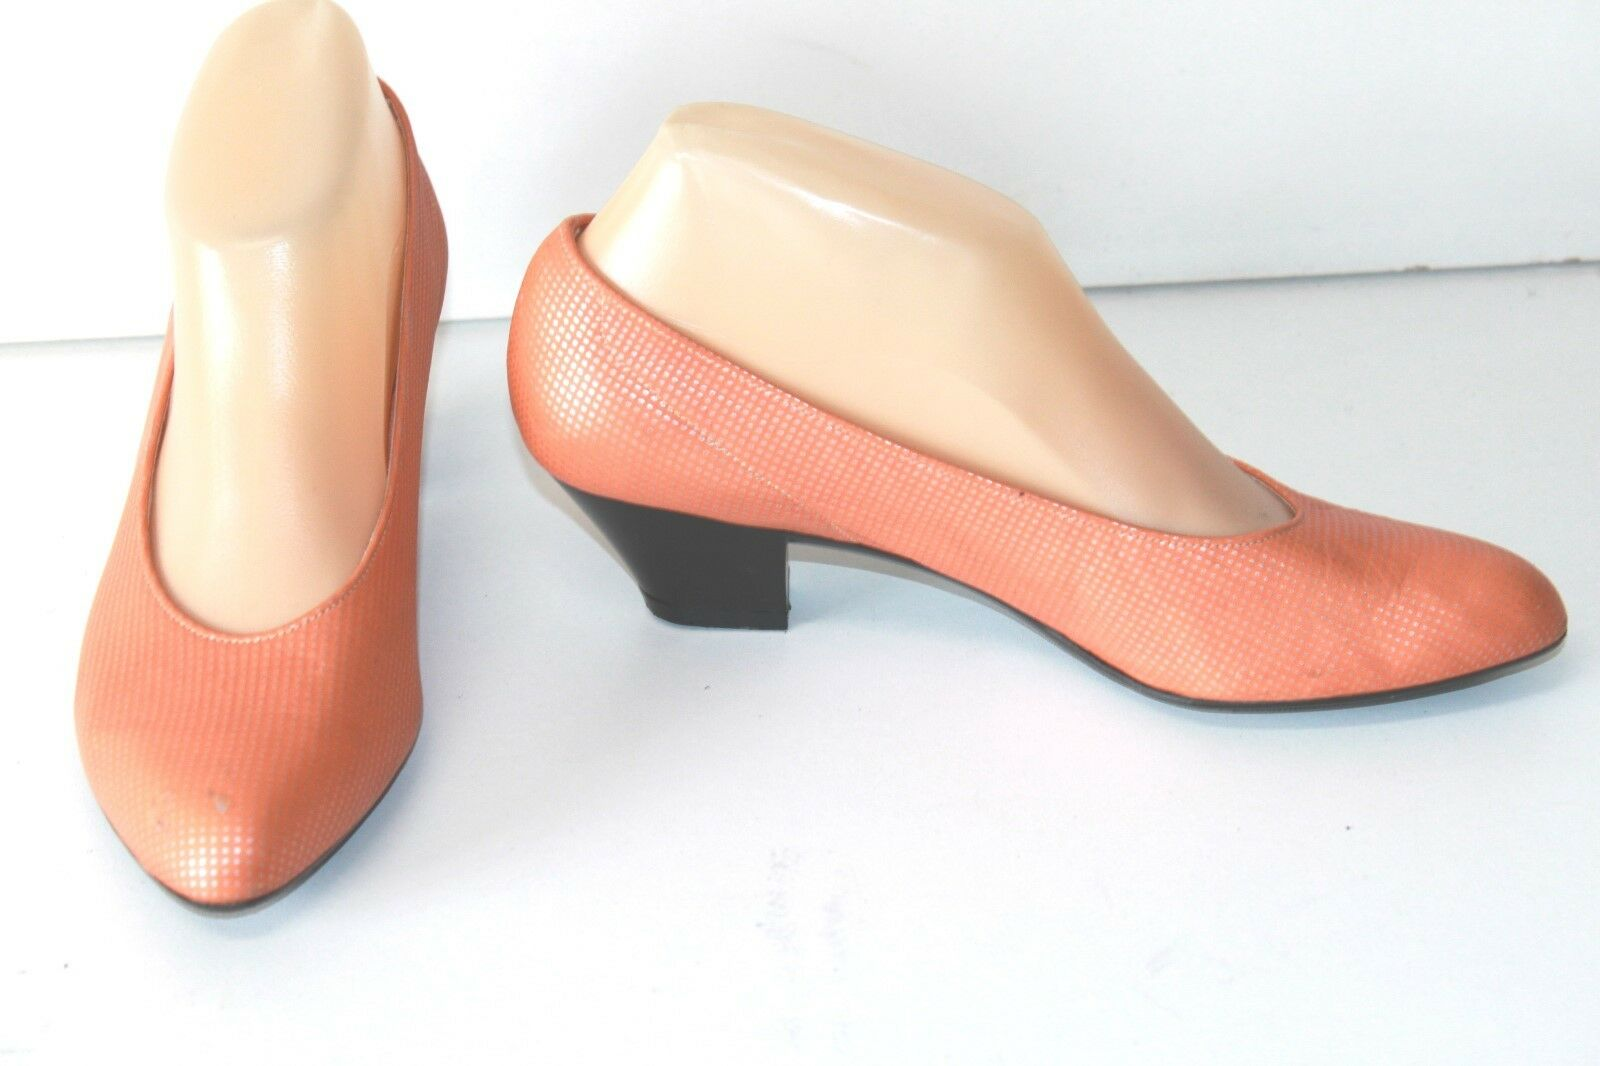 CHARLES JOURDAN Court shoes Vintage Leather orange Clear T 7B 37.5 FR